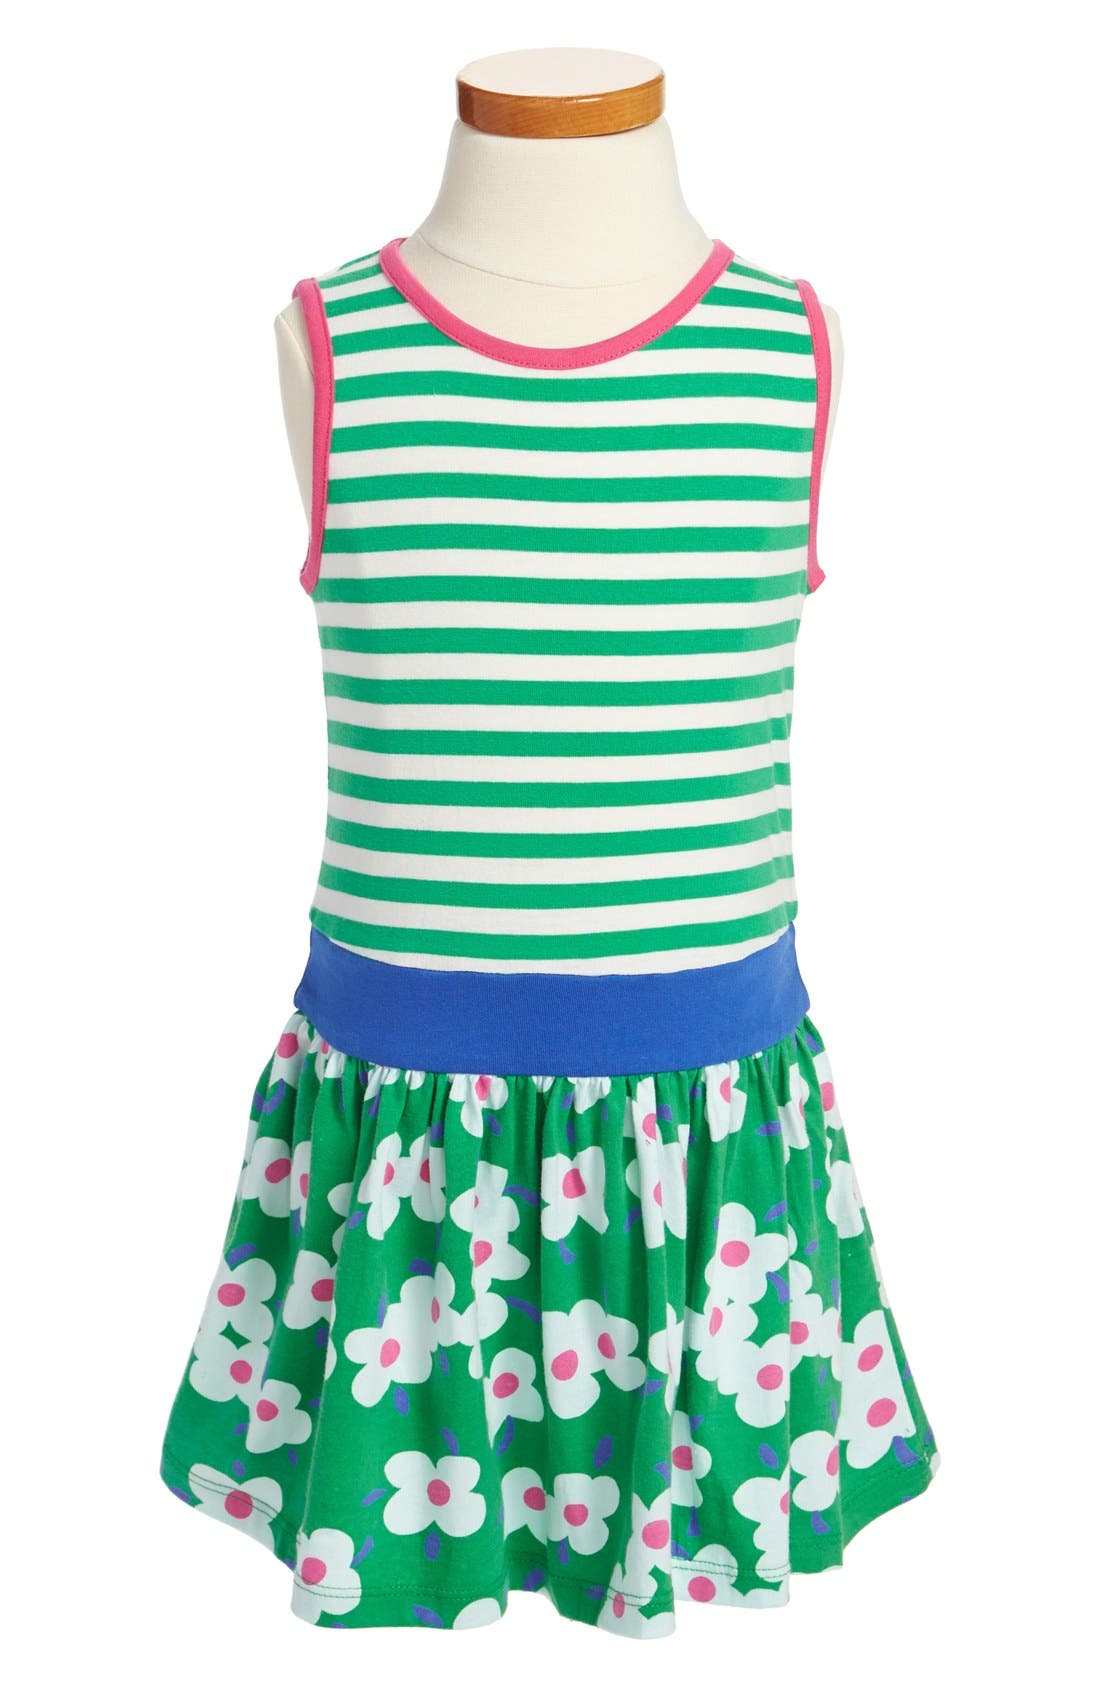 Alternate Image 1 Selected - Mini Boden 'Jolly' Cotton Jersey Dress (Little Girls & Big Girls)